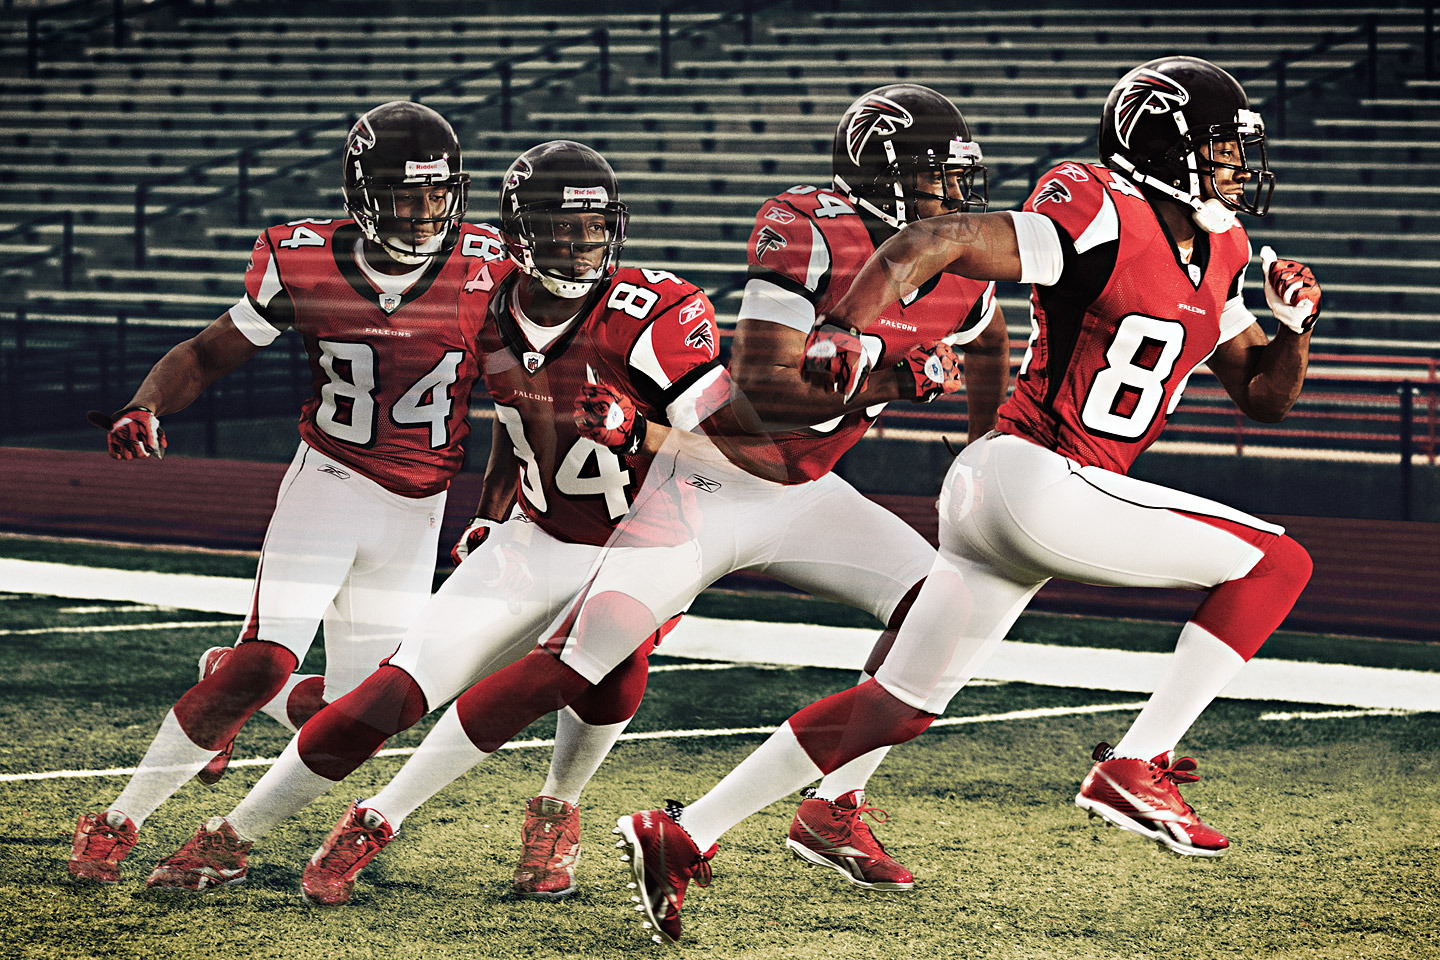 Best mechanics in sports: Routes, by Roddy White, Atlanta Falcons